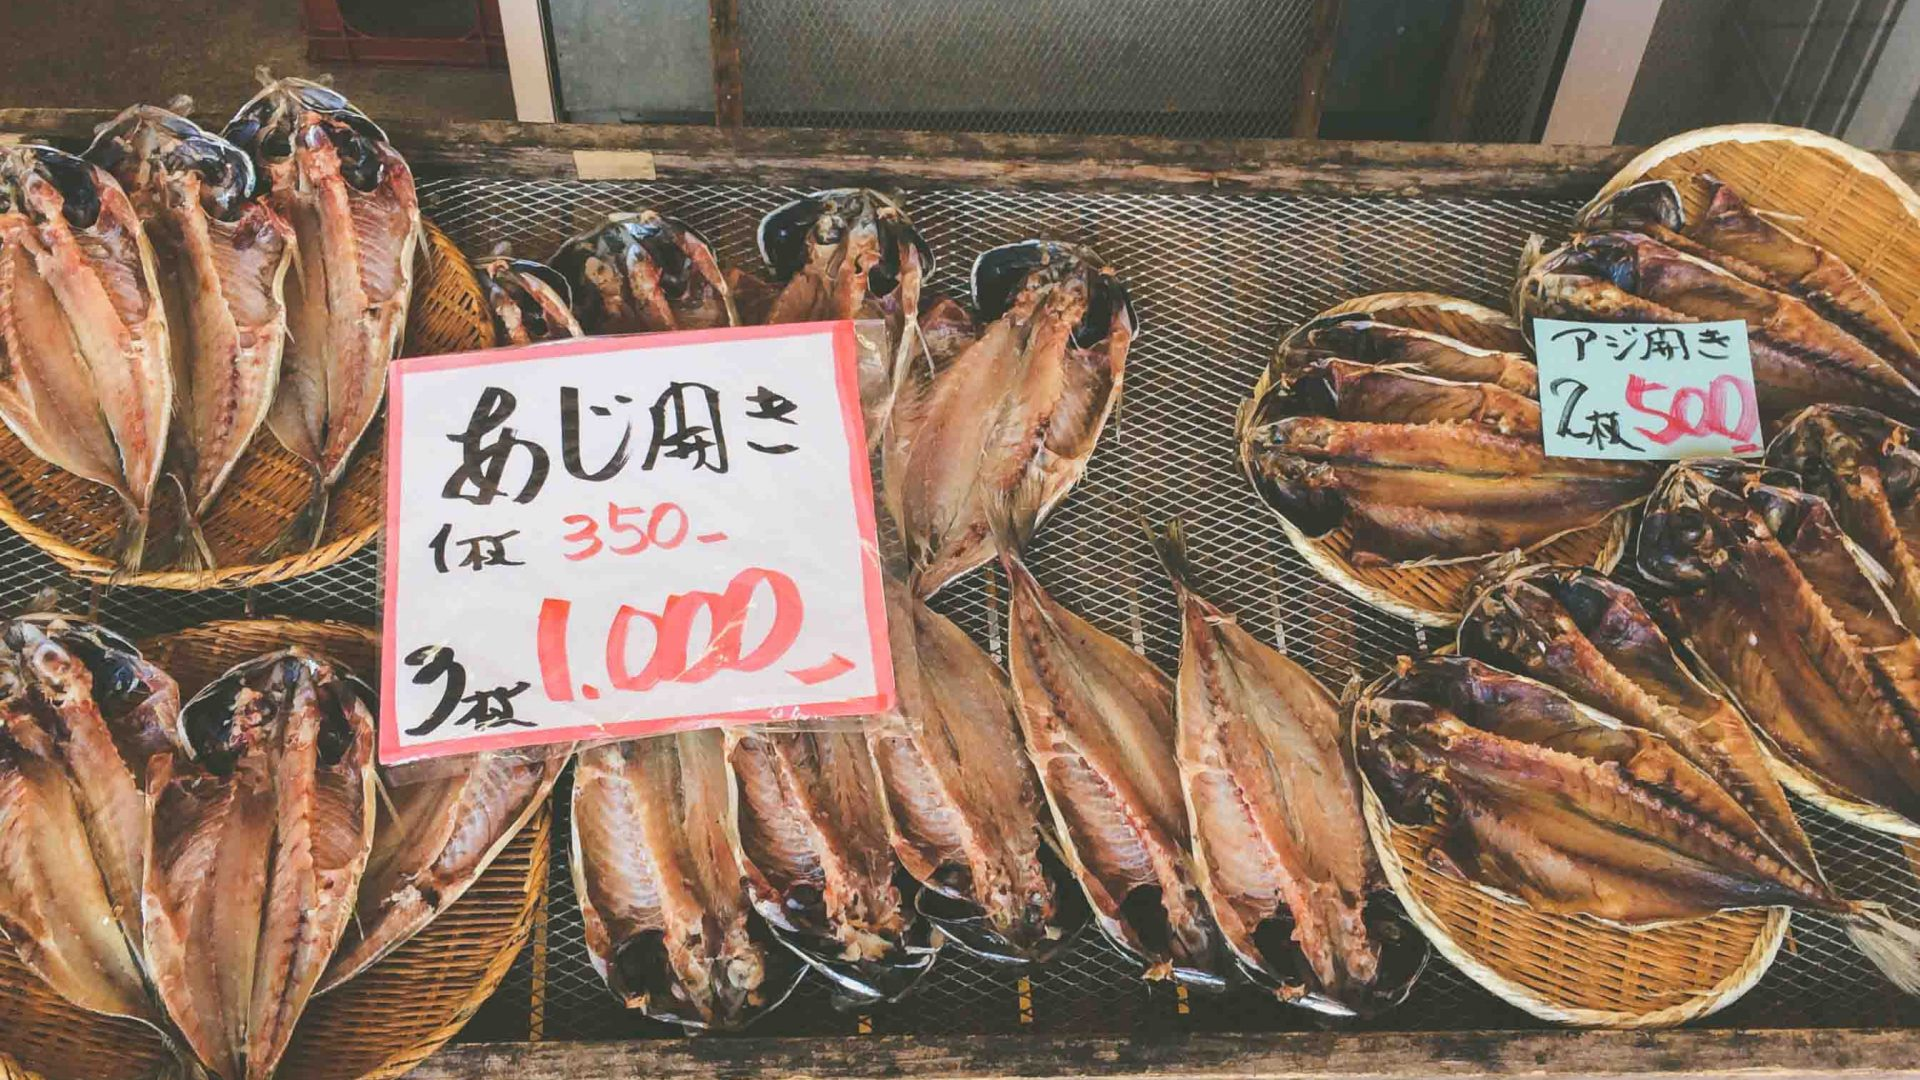 Fish for sale at the Marine Dream Nou fish market in Niigata, Japan.